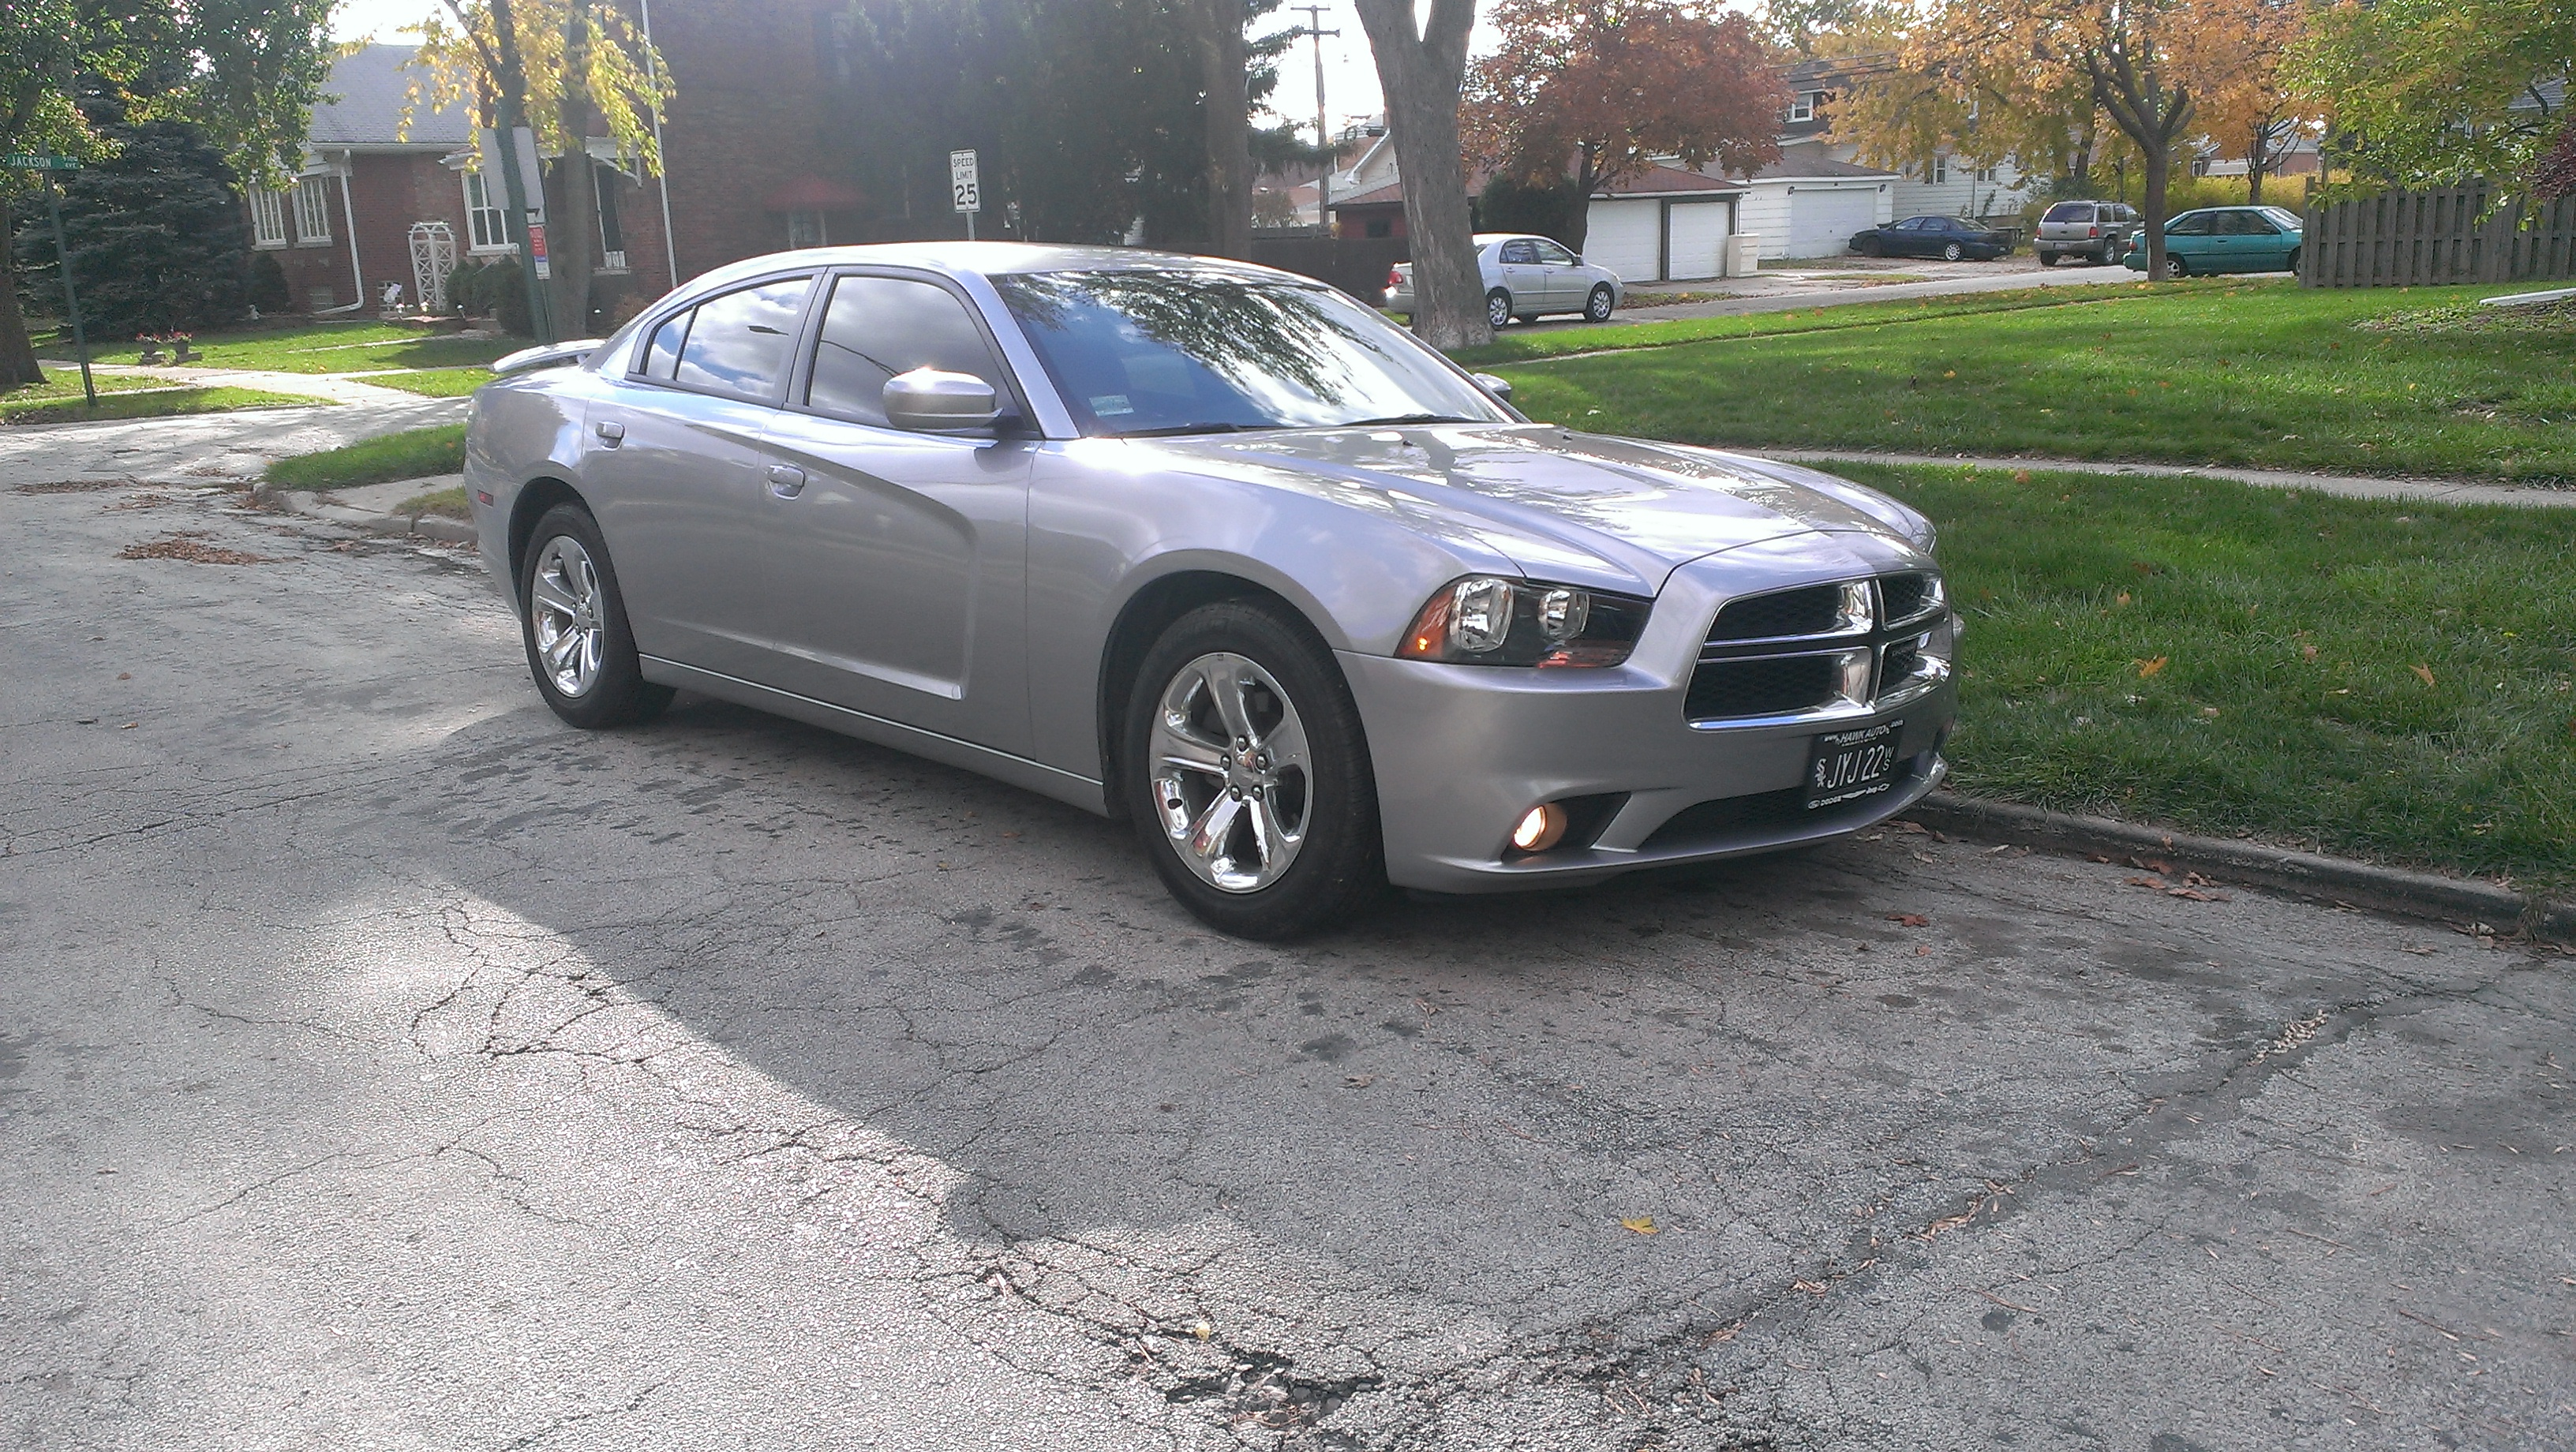 THEBOSS1622's 2013 Dodge Charger